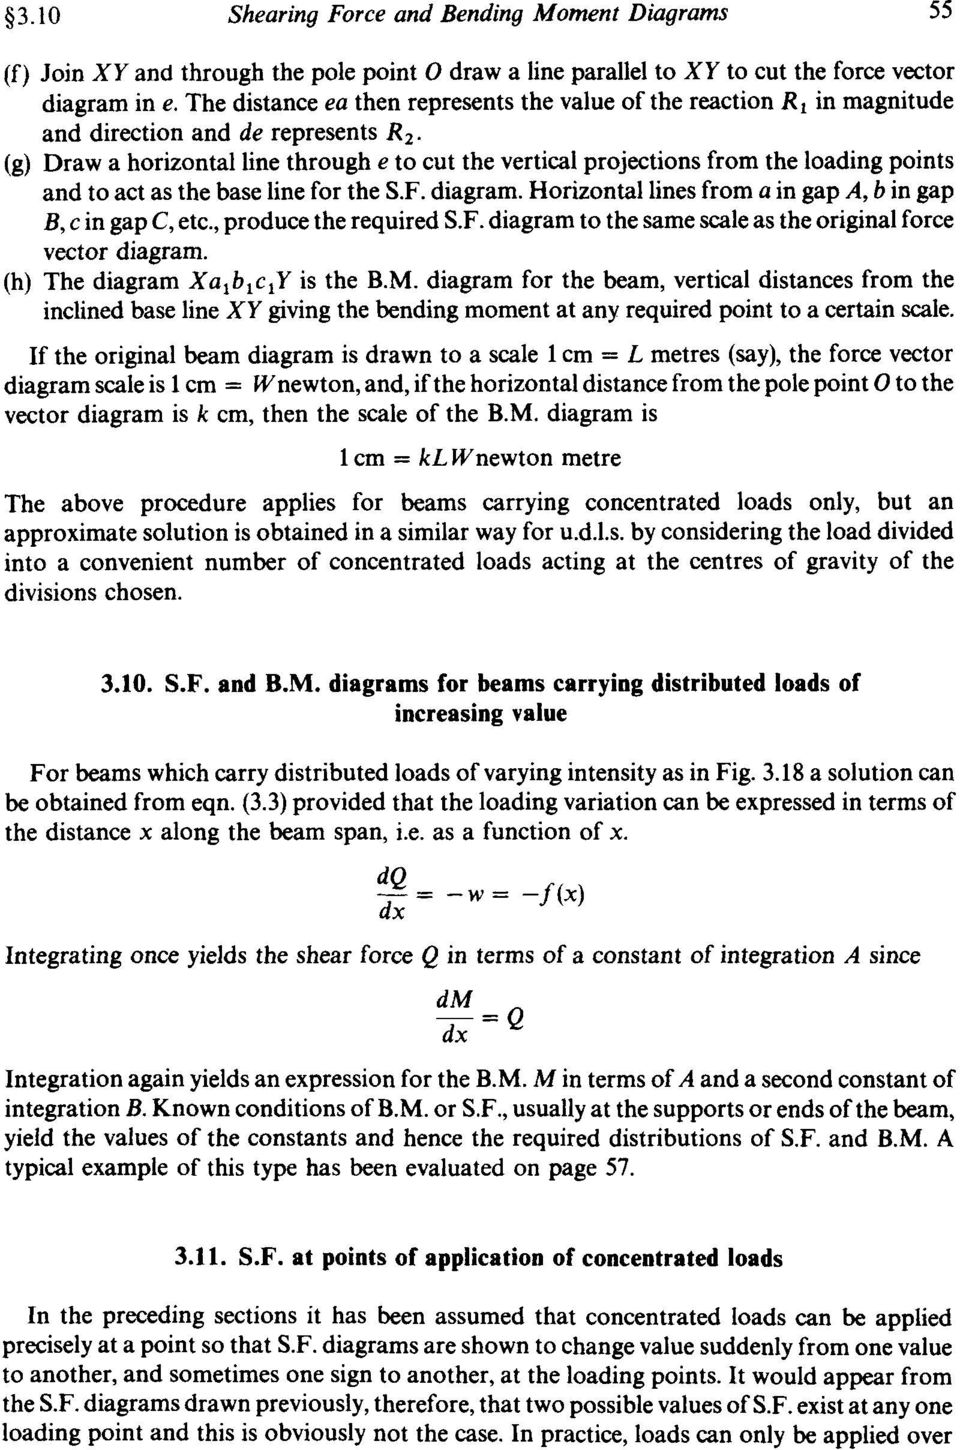 Chapter 3 Shearing Force And Bending Moment Diagrams Summary Pdf Draw The Shear Clearly Indicating G A Horizontal Line Through E To Cut Vertical Projections From